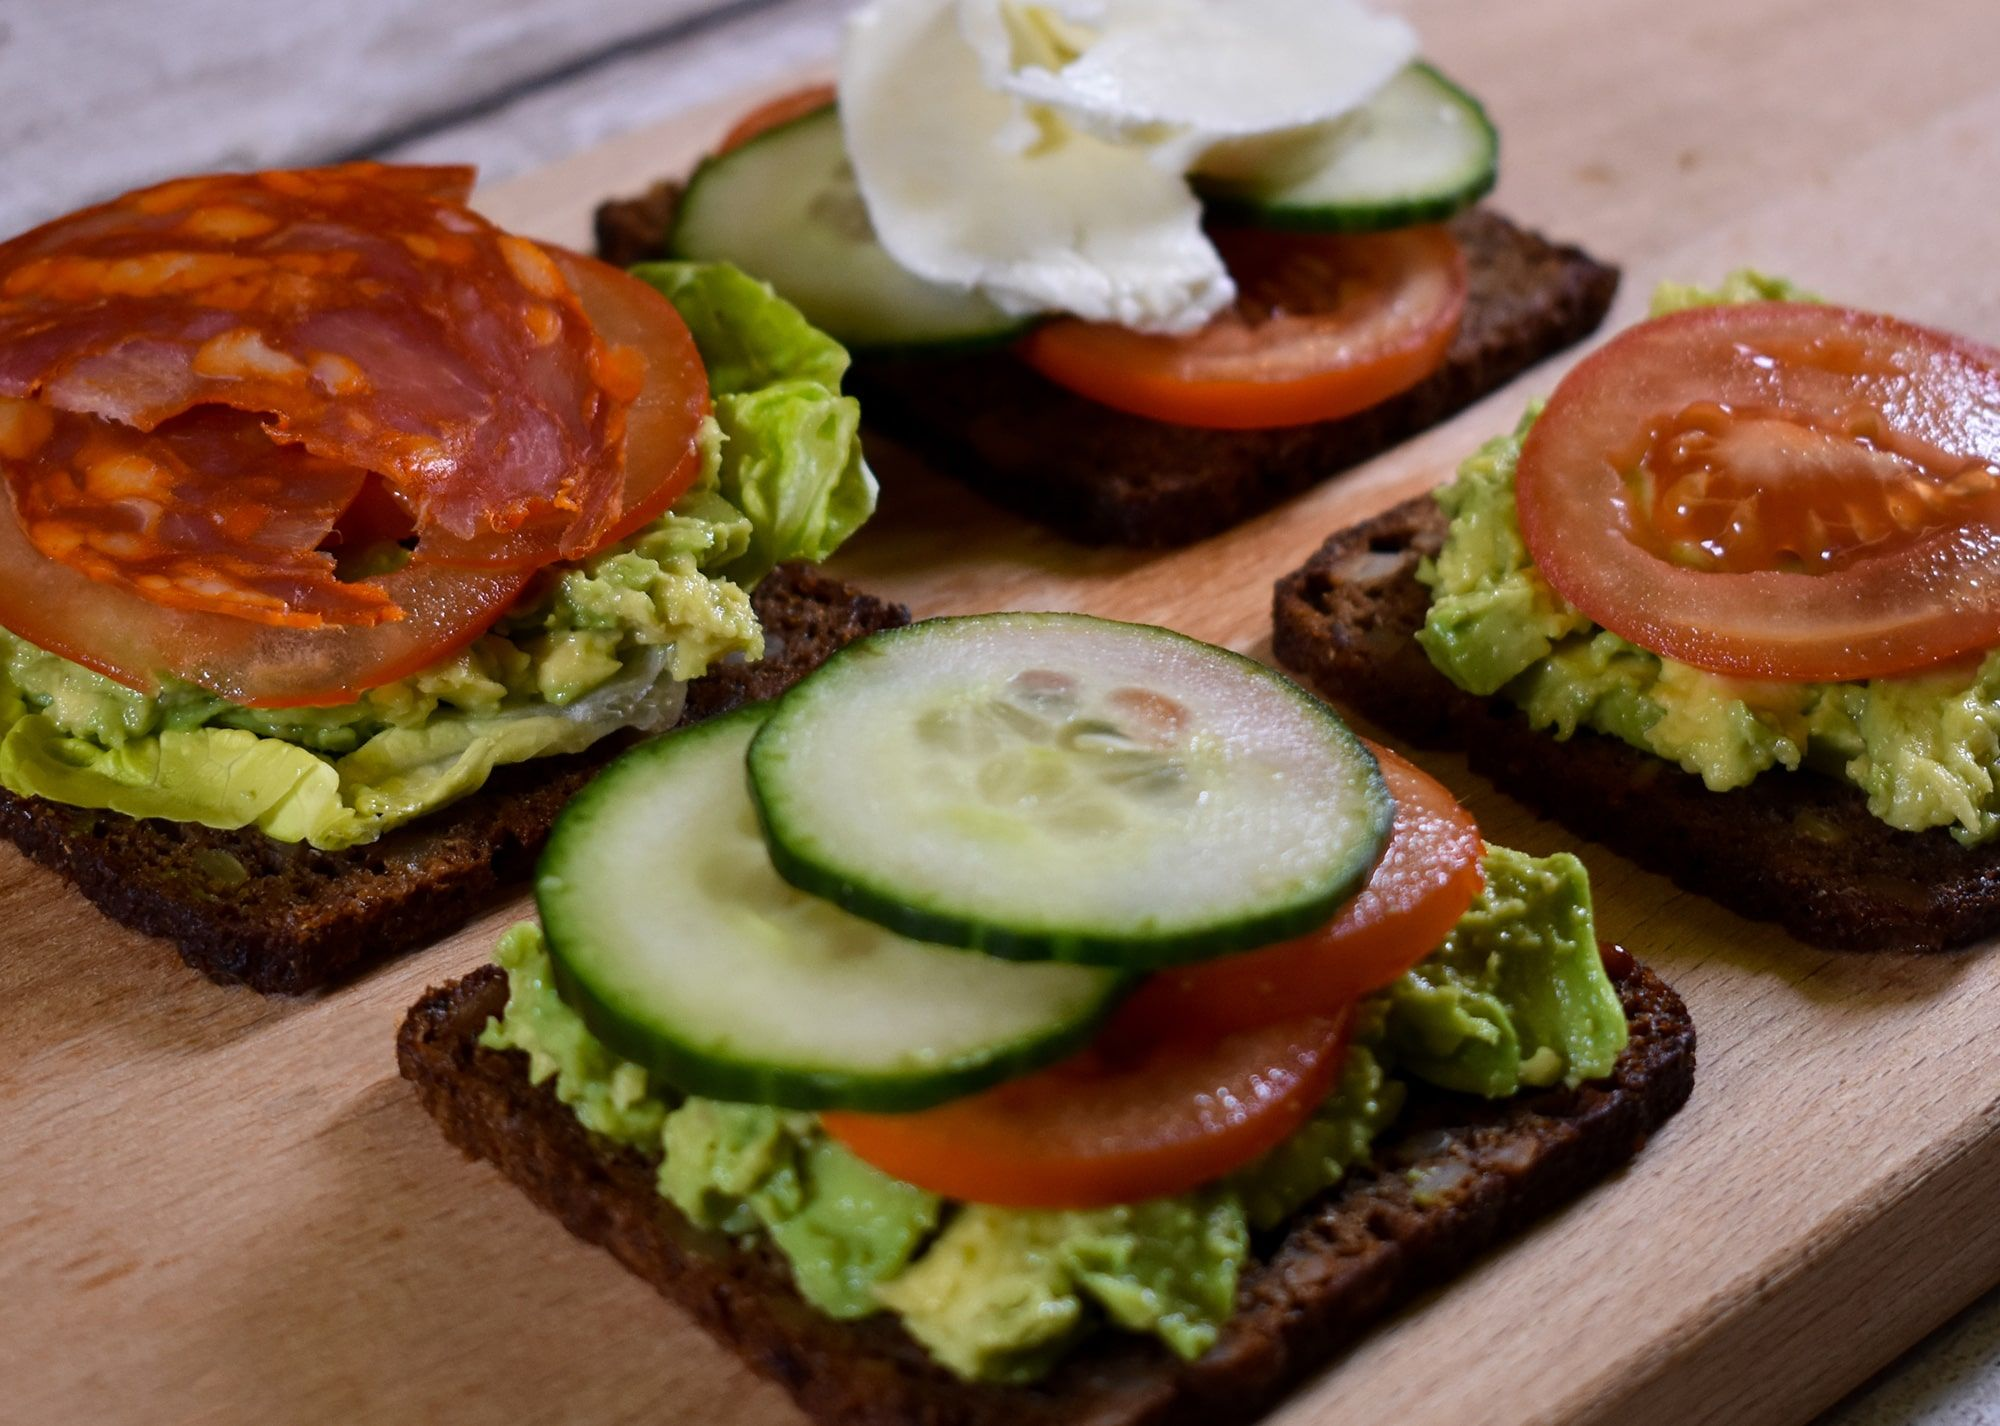 Open sandwich with German rye bread with a mixture of toppings, including avocado, tomato, cucumber, salami and mozzarella